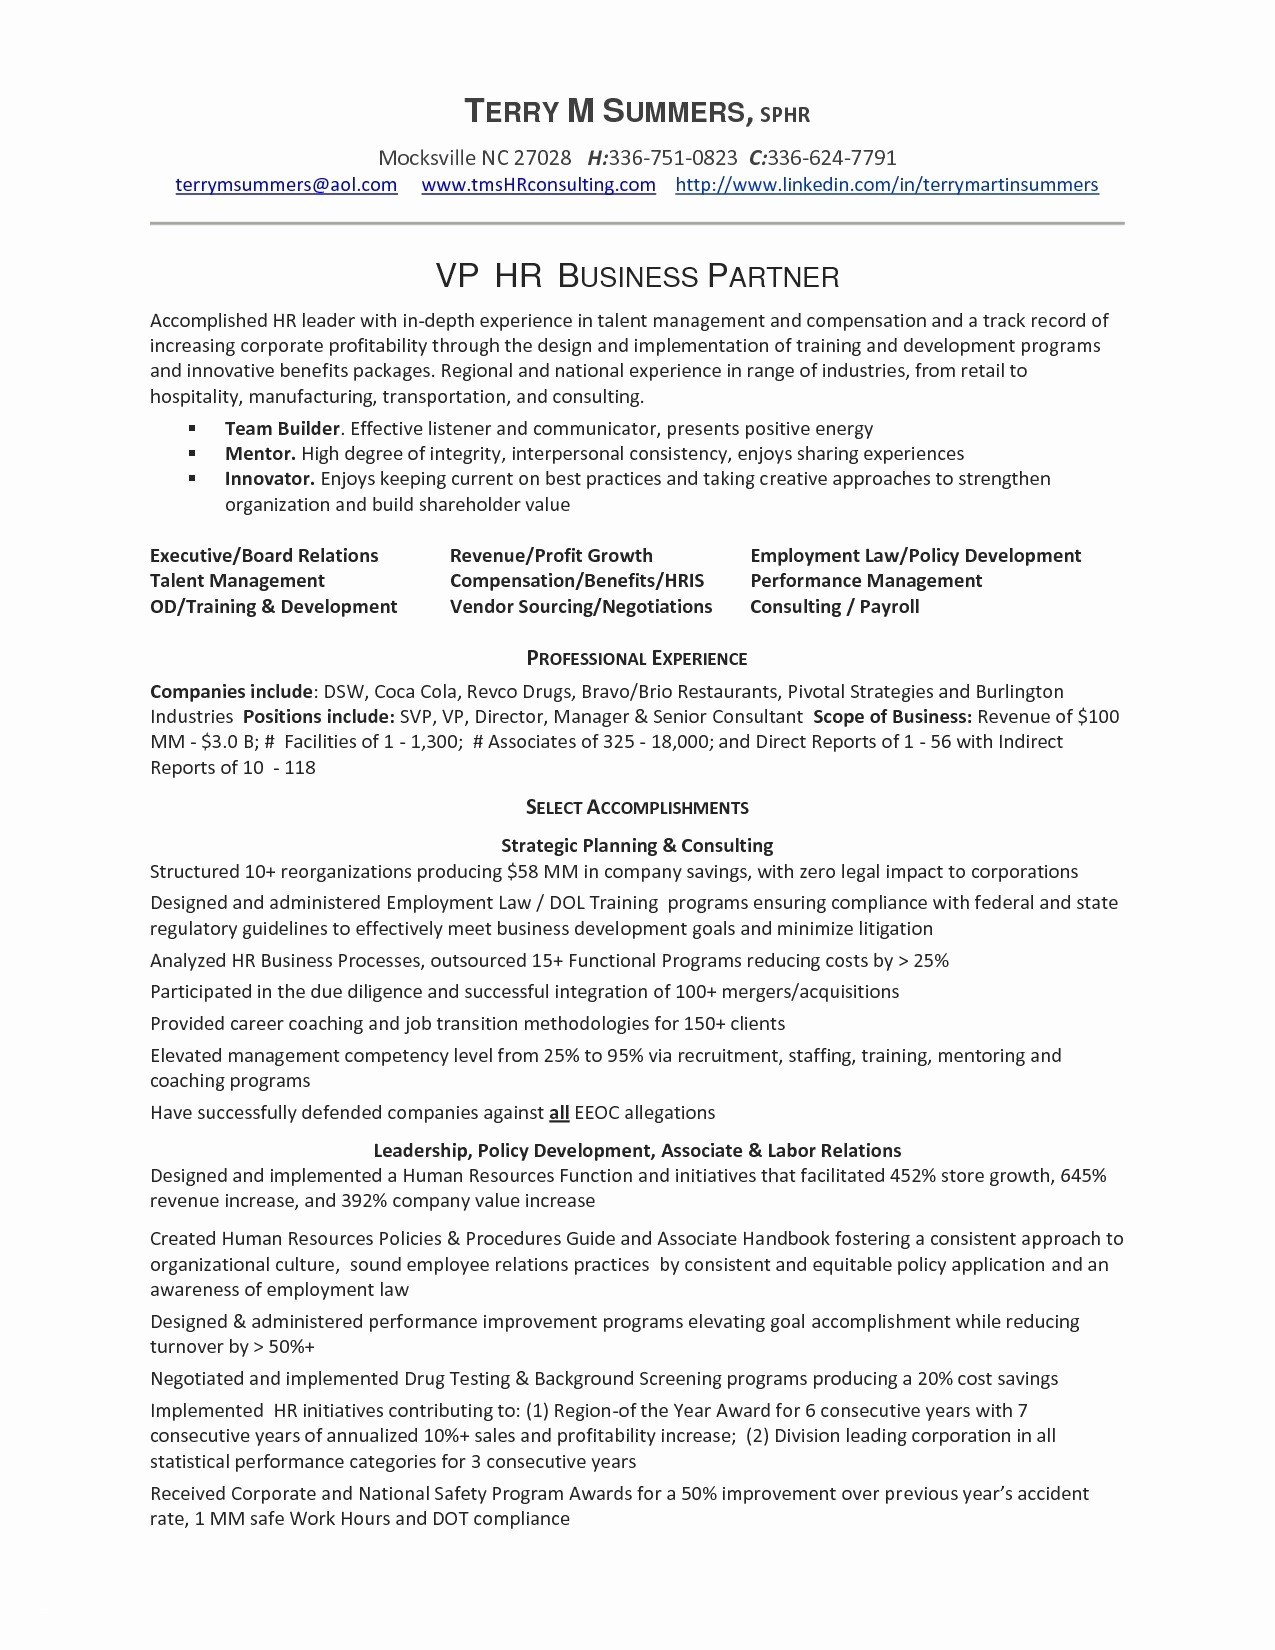 healthcare business analyst resume sample example-Business Analyst Resume Sample Pdf 7-e